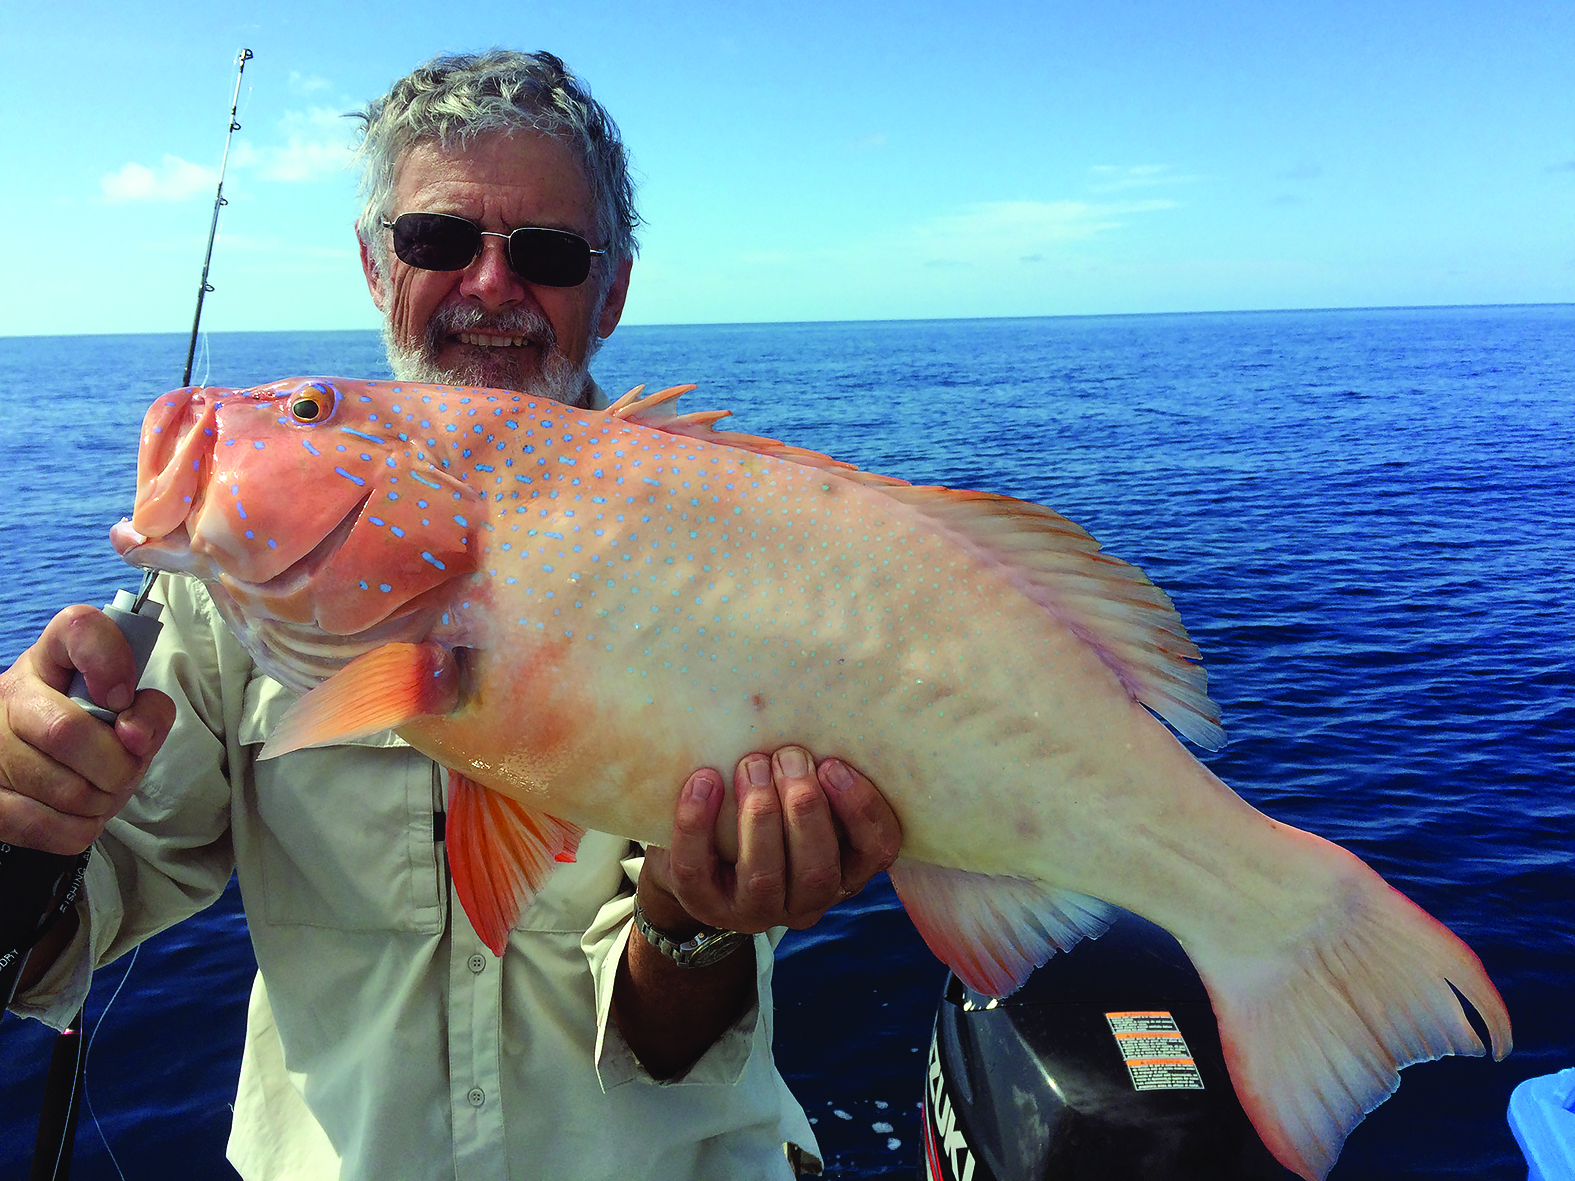 A cracker coral trout boated by Carey.